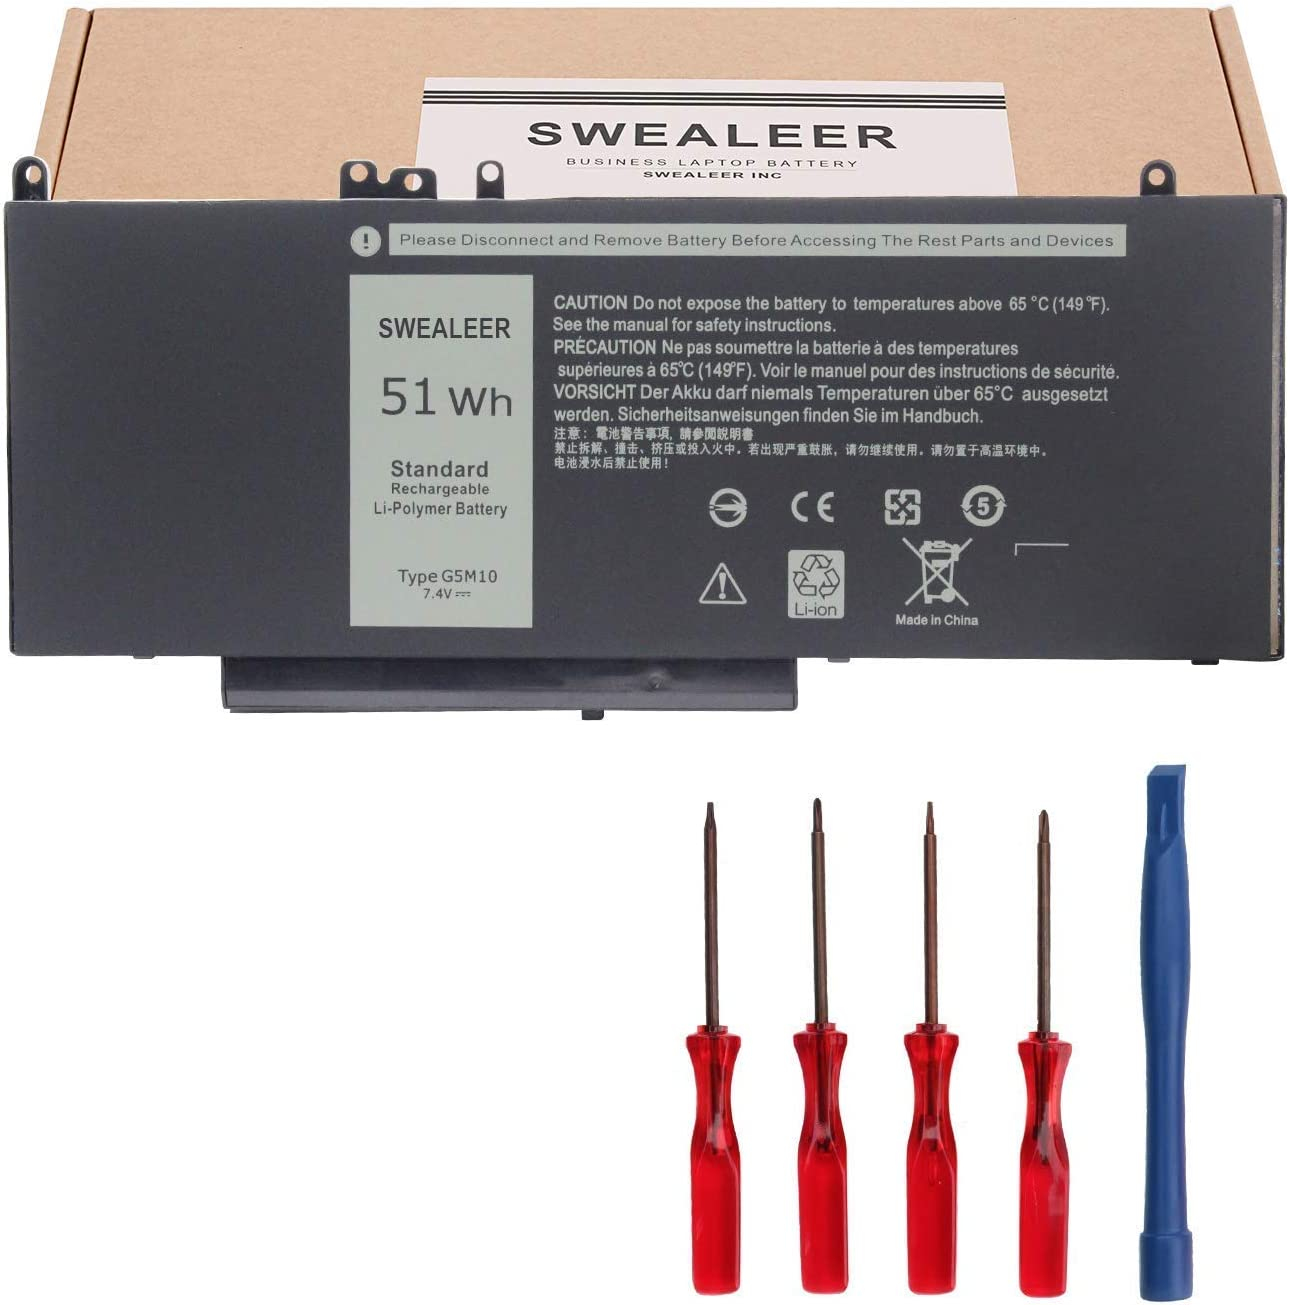 SWEALEER G5M10 Laptop Battery Compatible with Dell Latitude 14 E5450 Latitude 15 E5550 Latitude 12 E5250 Notebook Replacement for R0TMP RYXXH 8V5GX R9XM9 WYJC2 0WYJC2 1KY05 [7.4V 4Cell 51WH G5M10]